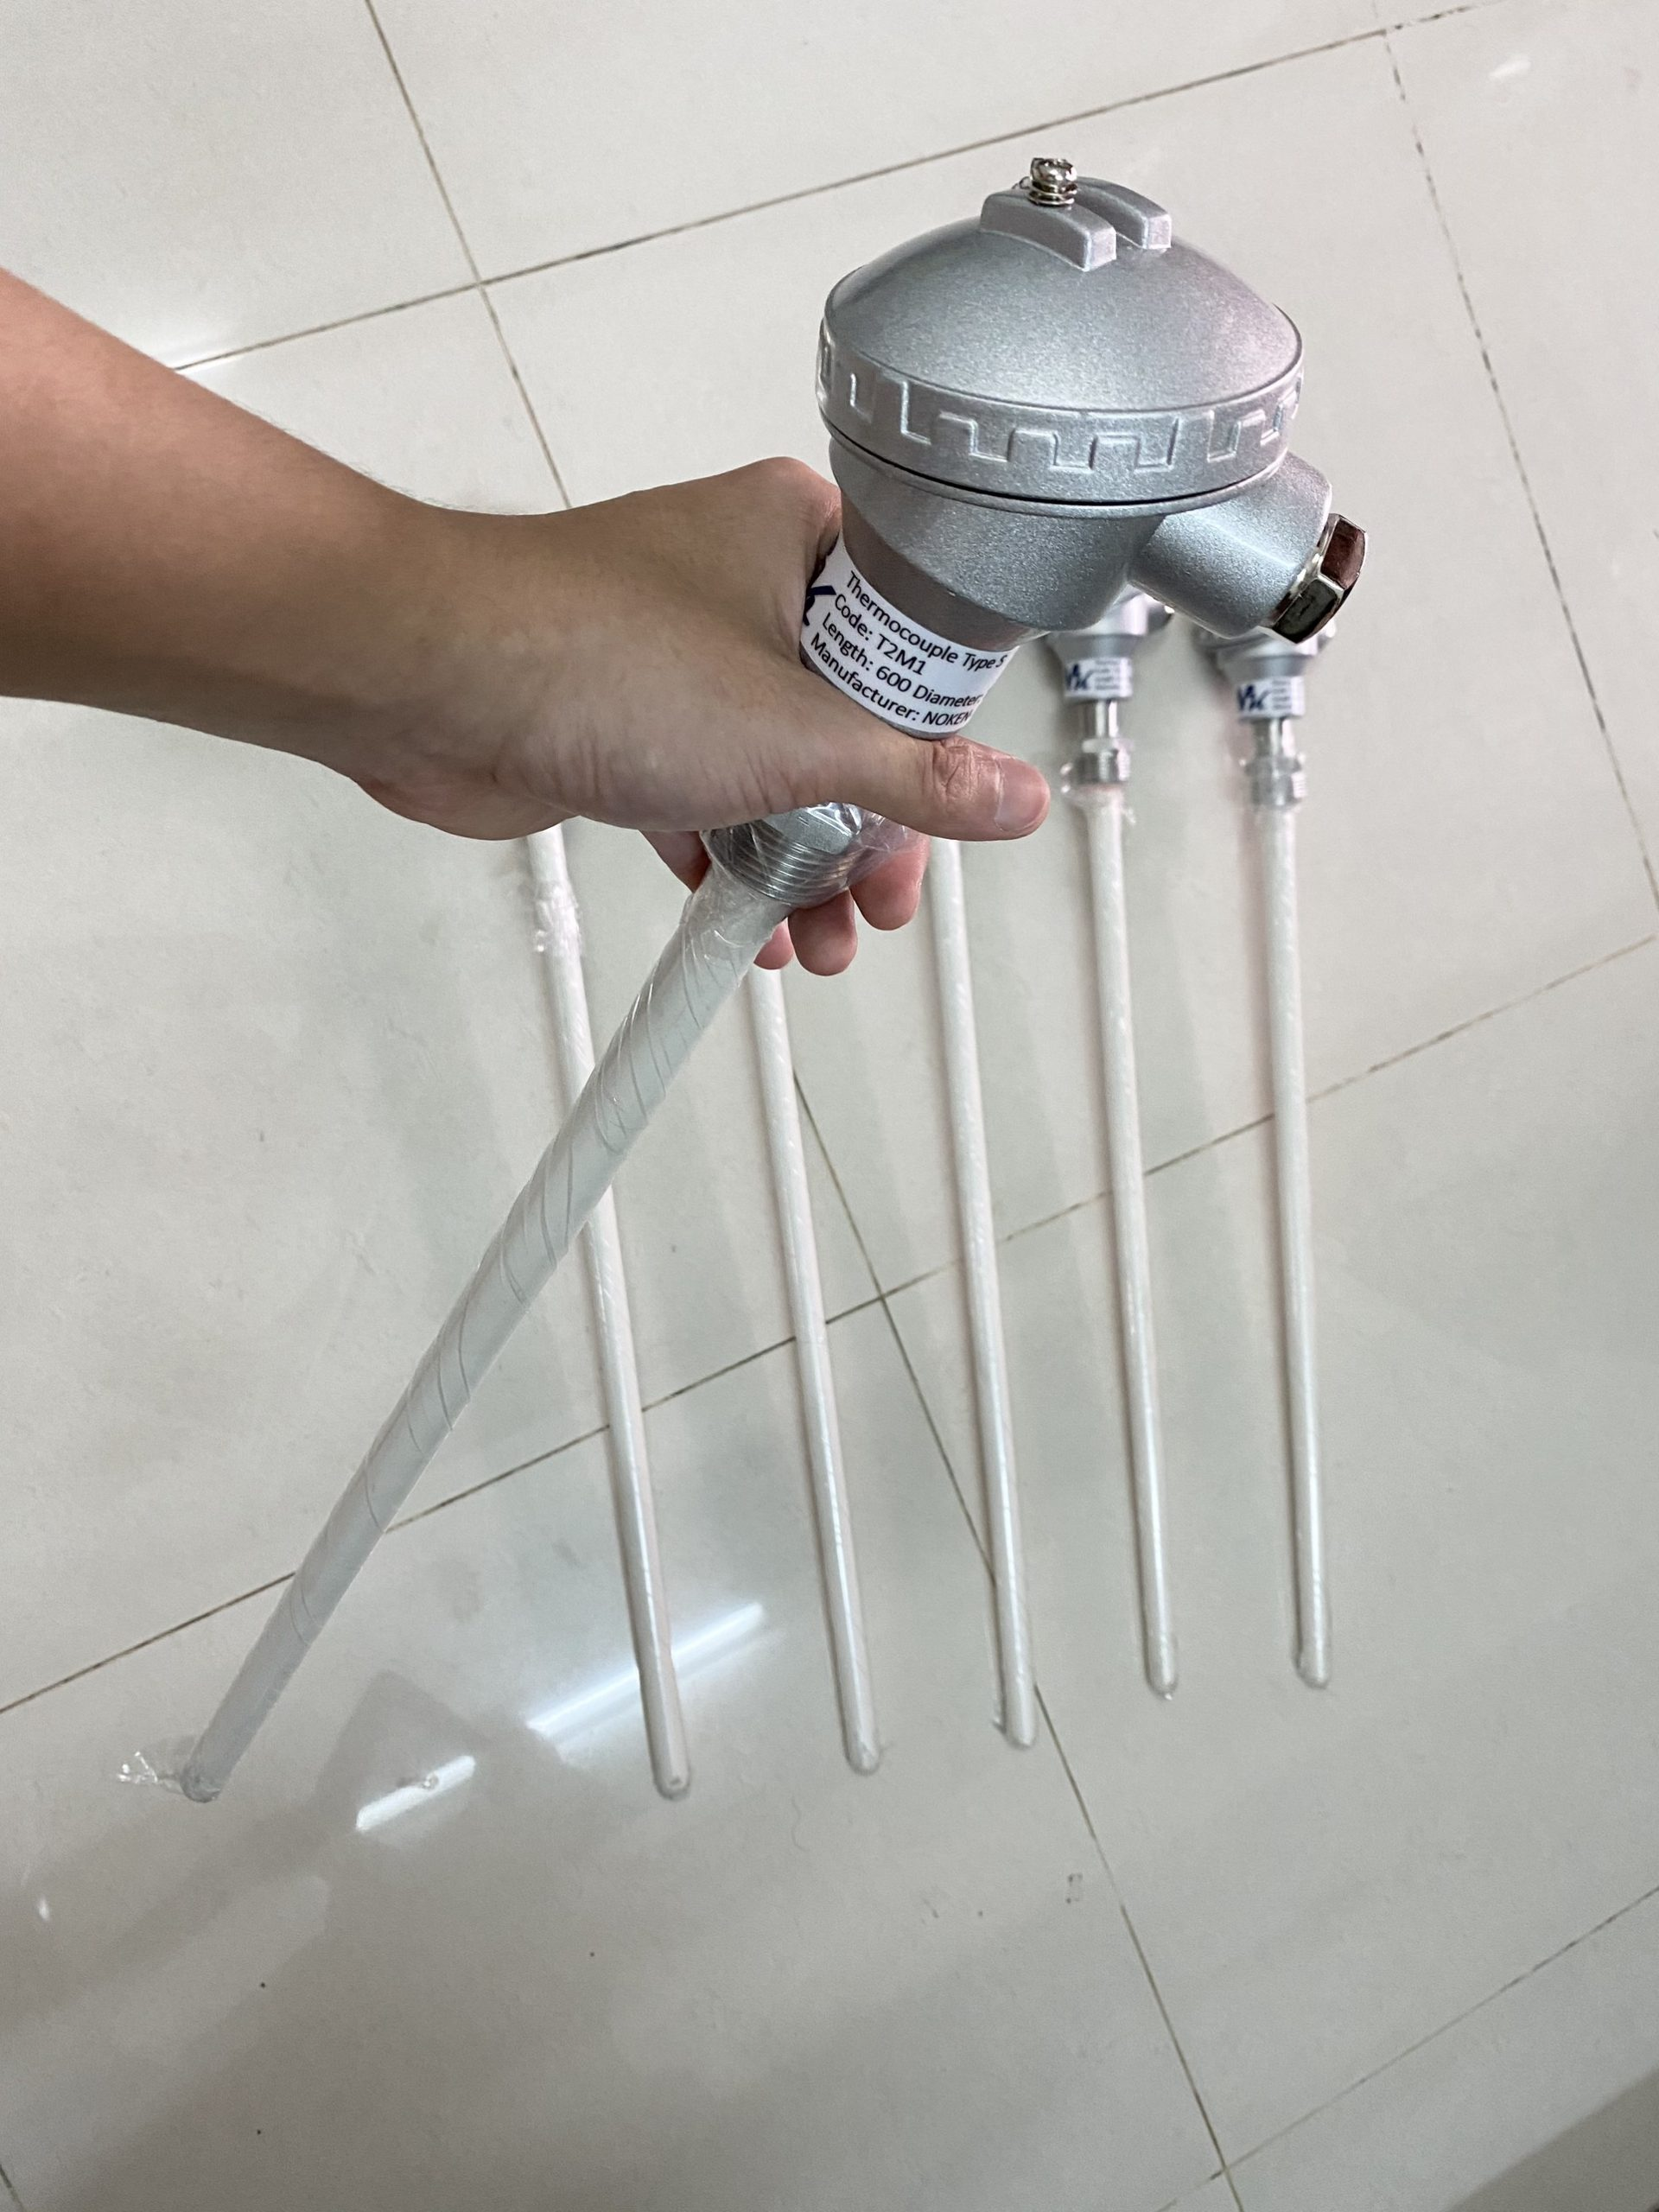 can nhiệt loại S